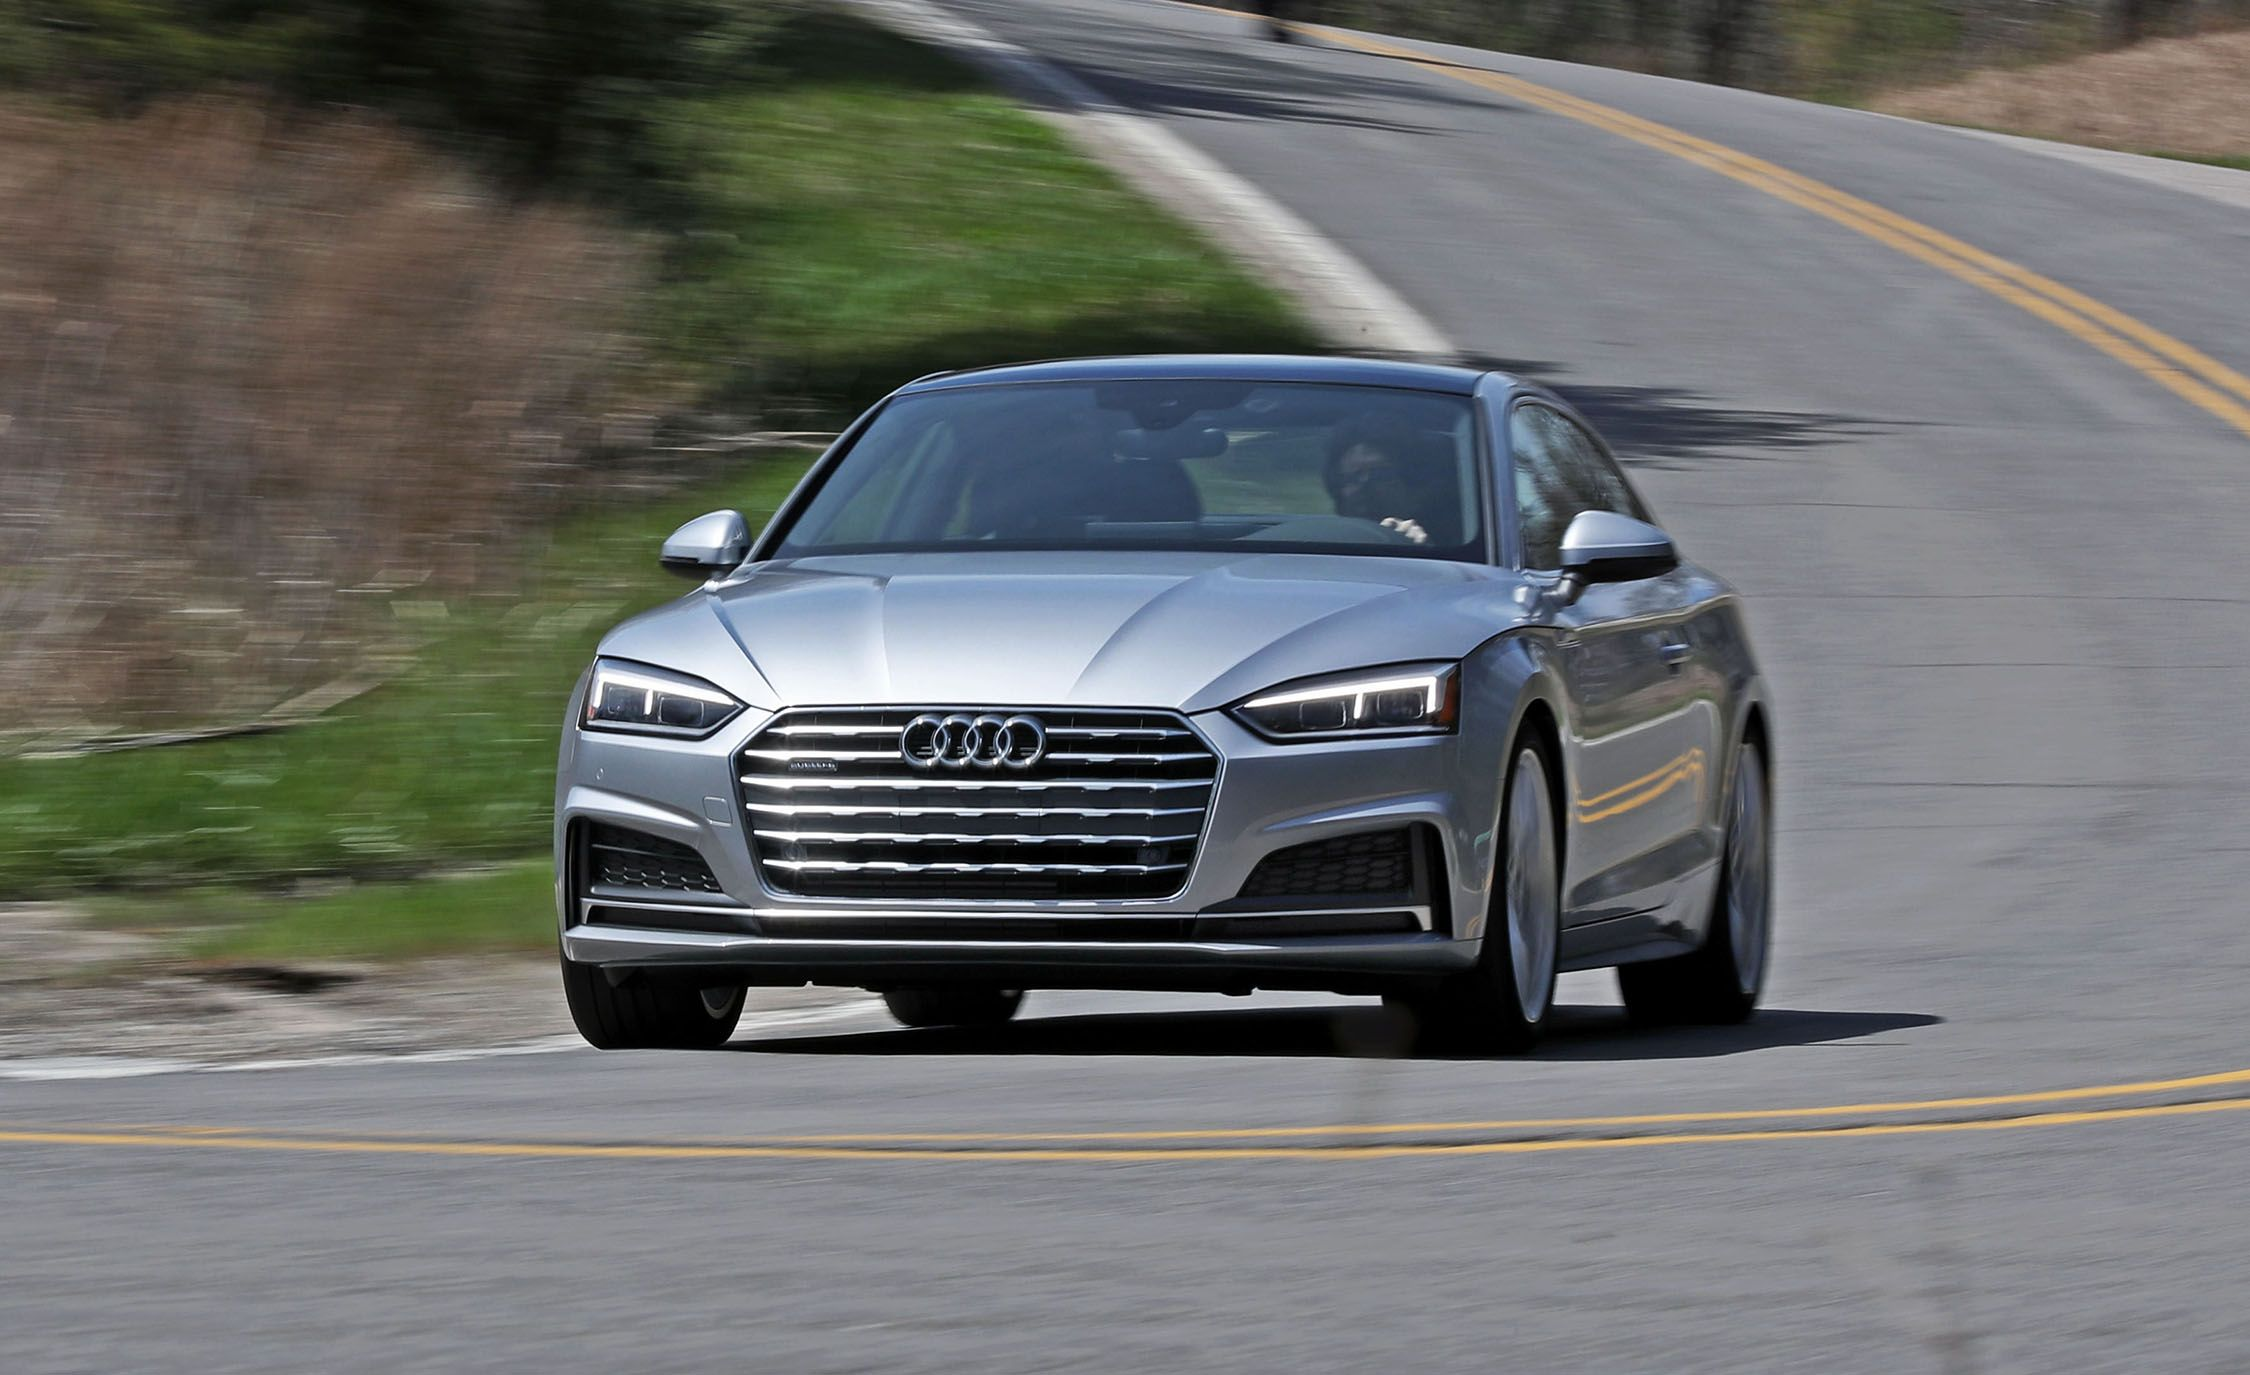 Audi A5 Reviews Audi A5 Price s and Specs